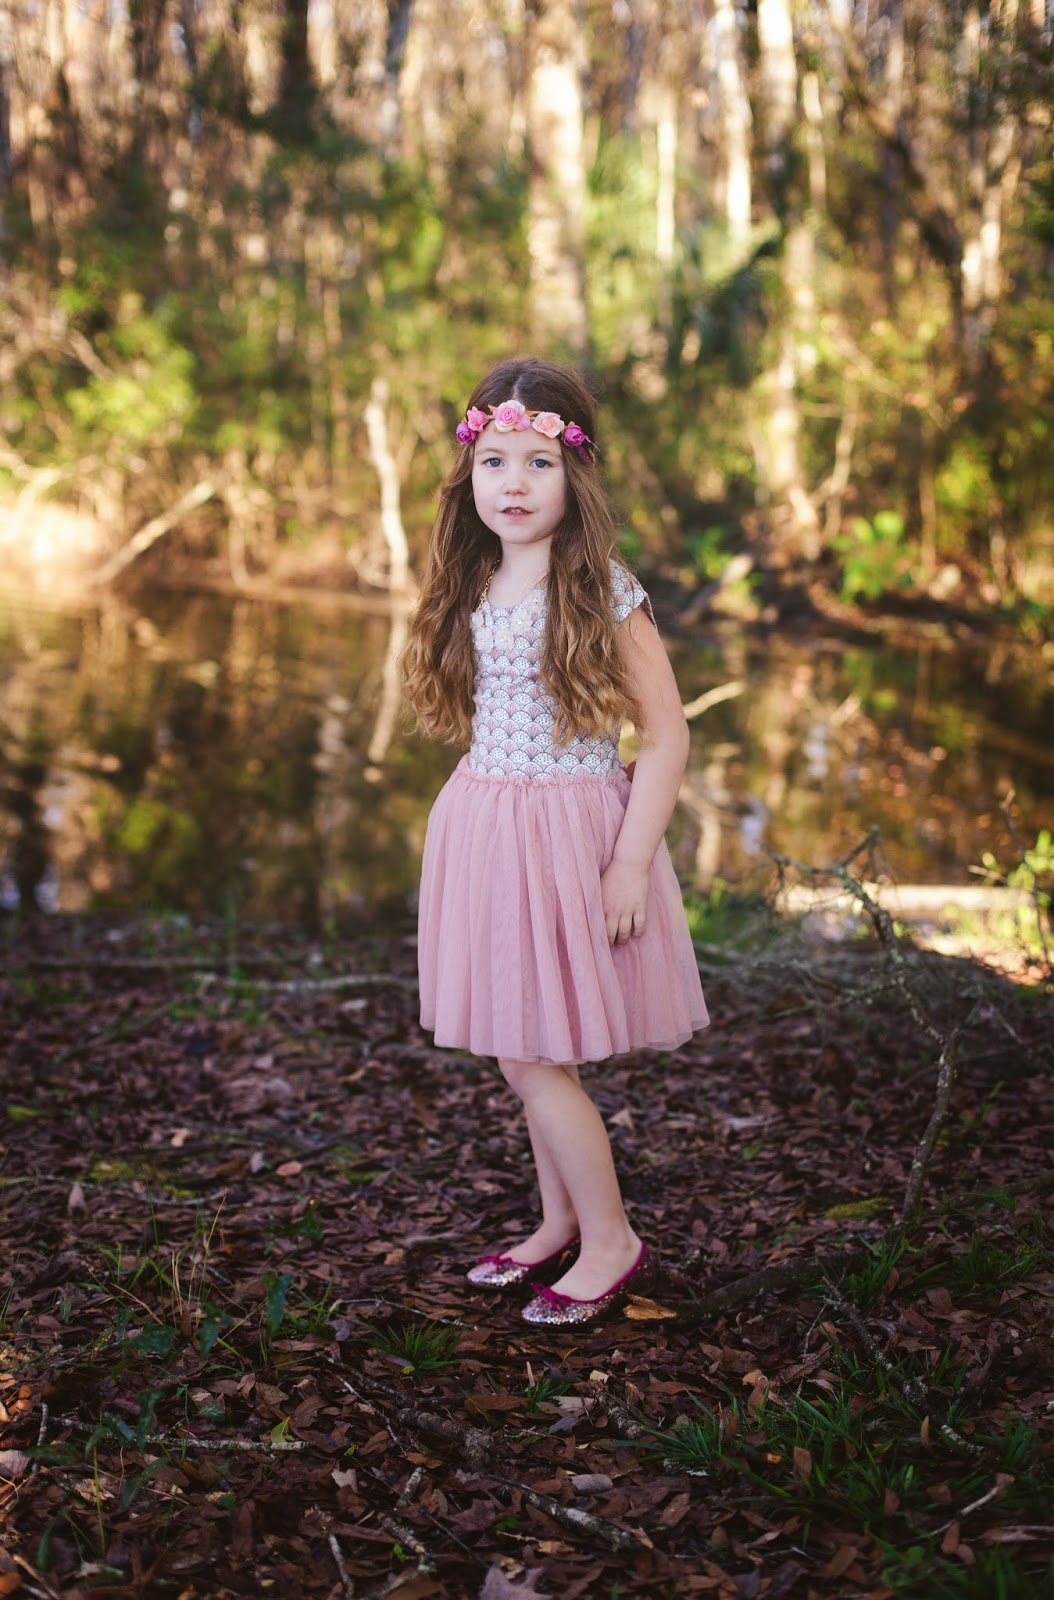 land o lakes fl child photographer